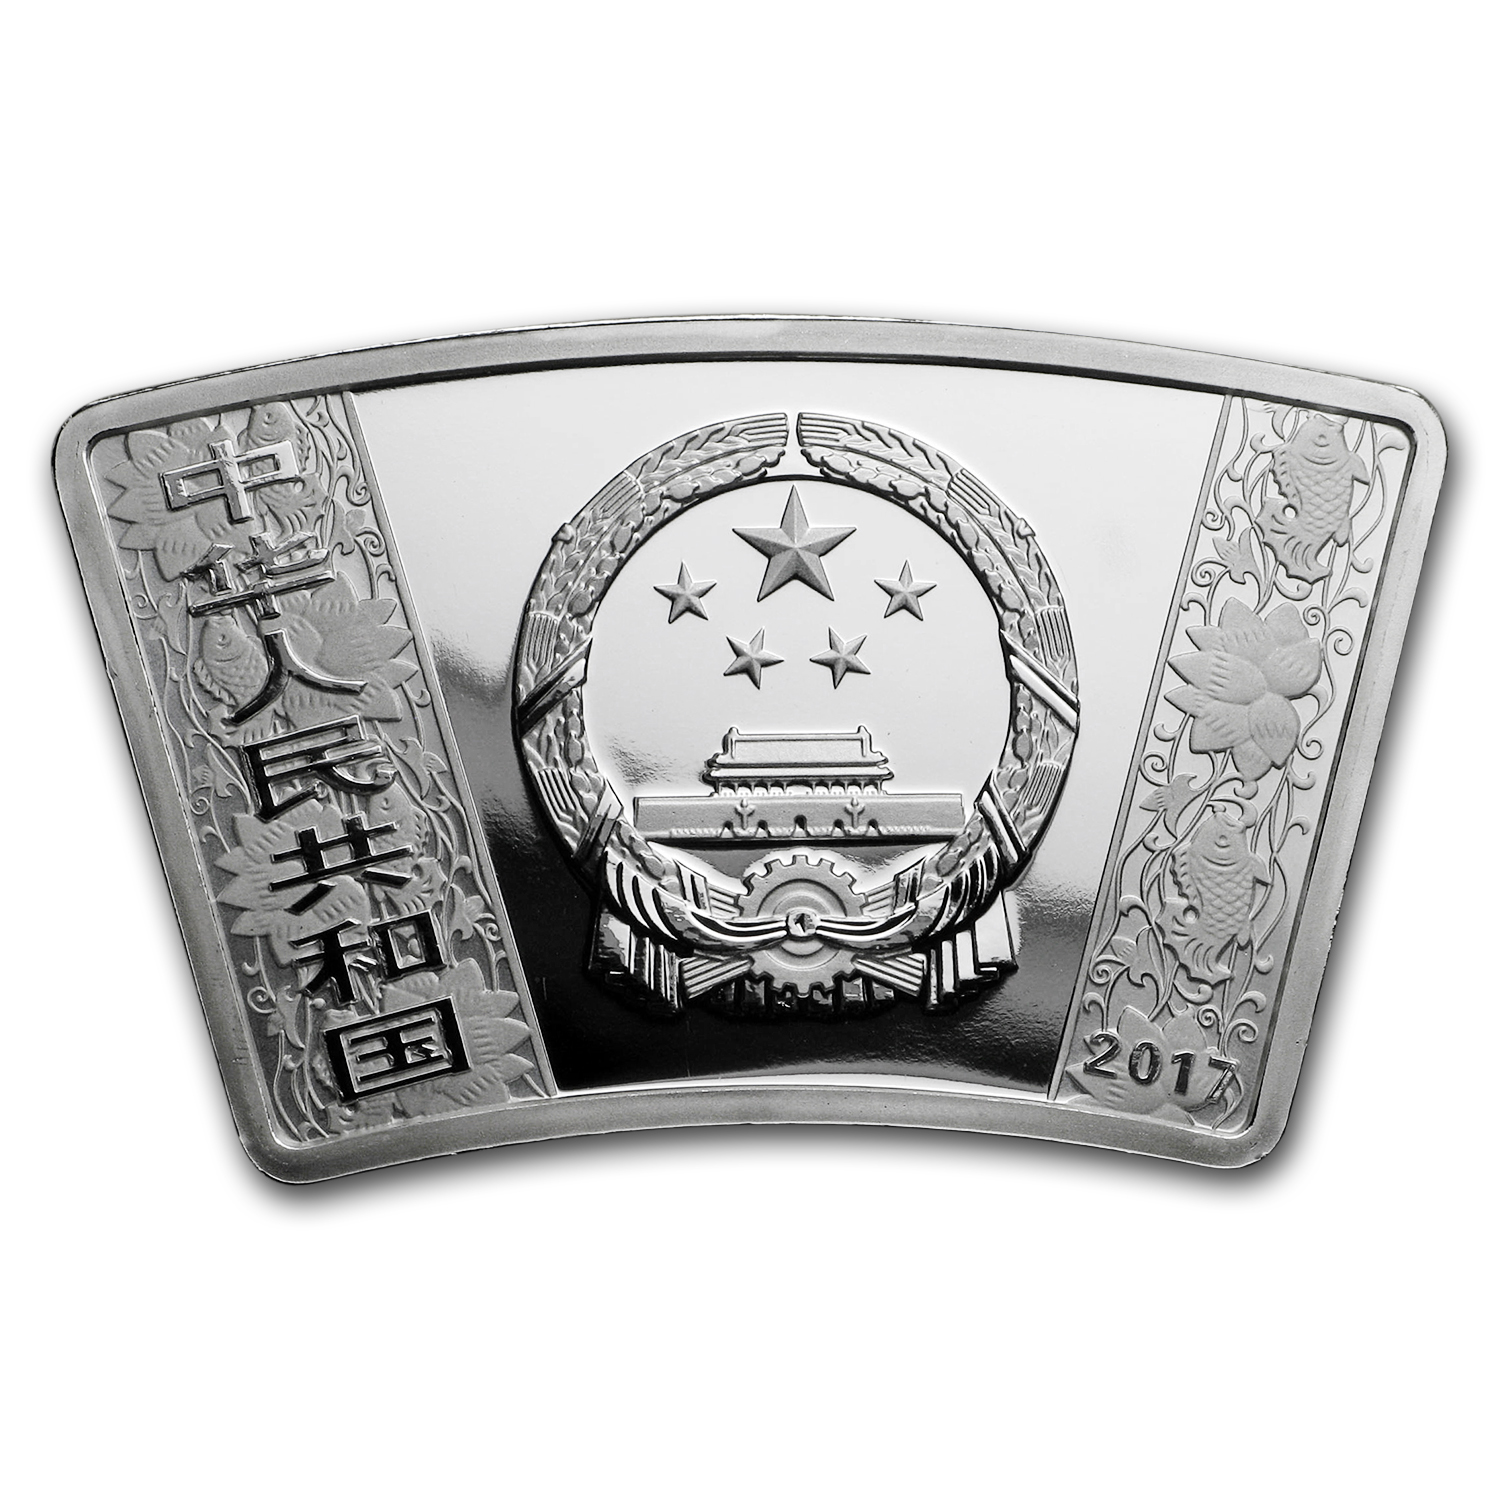 2017 China 1 oz Silver Rooster Proof Fan Coin (w/Box & COA)